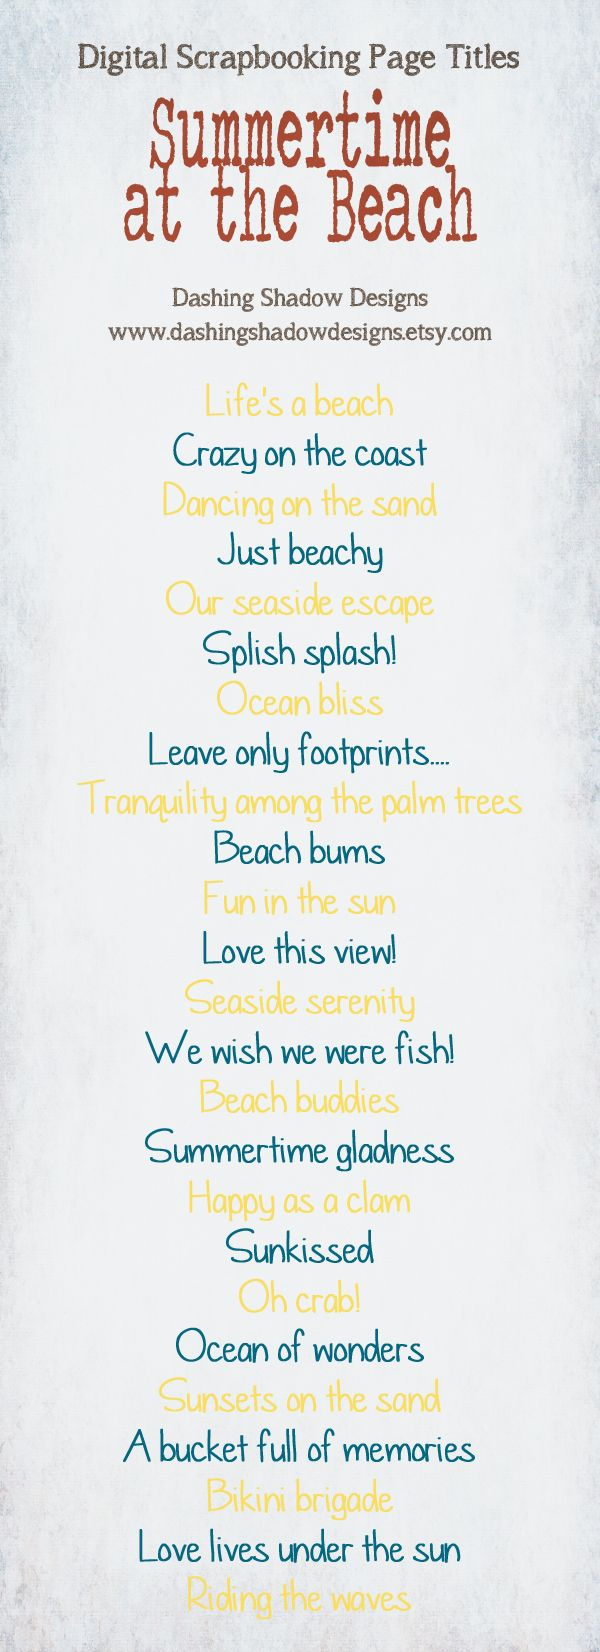 .Scrapbook Page Title Ideas - Summertime at the Beach.